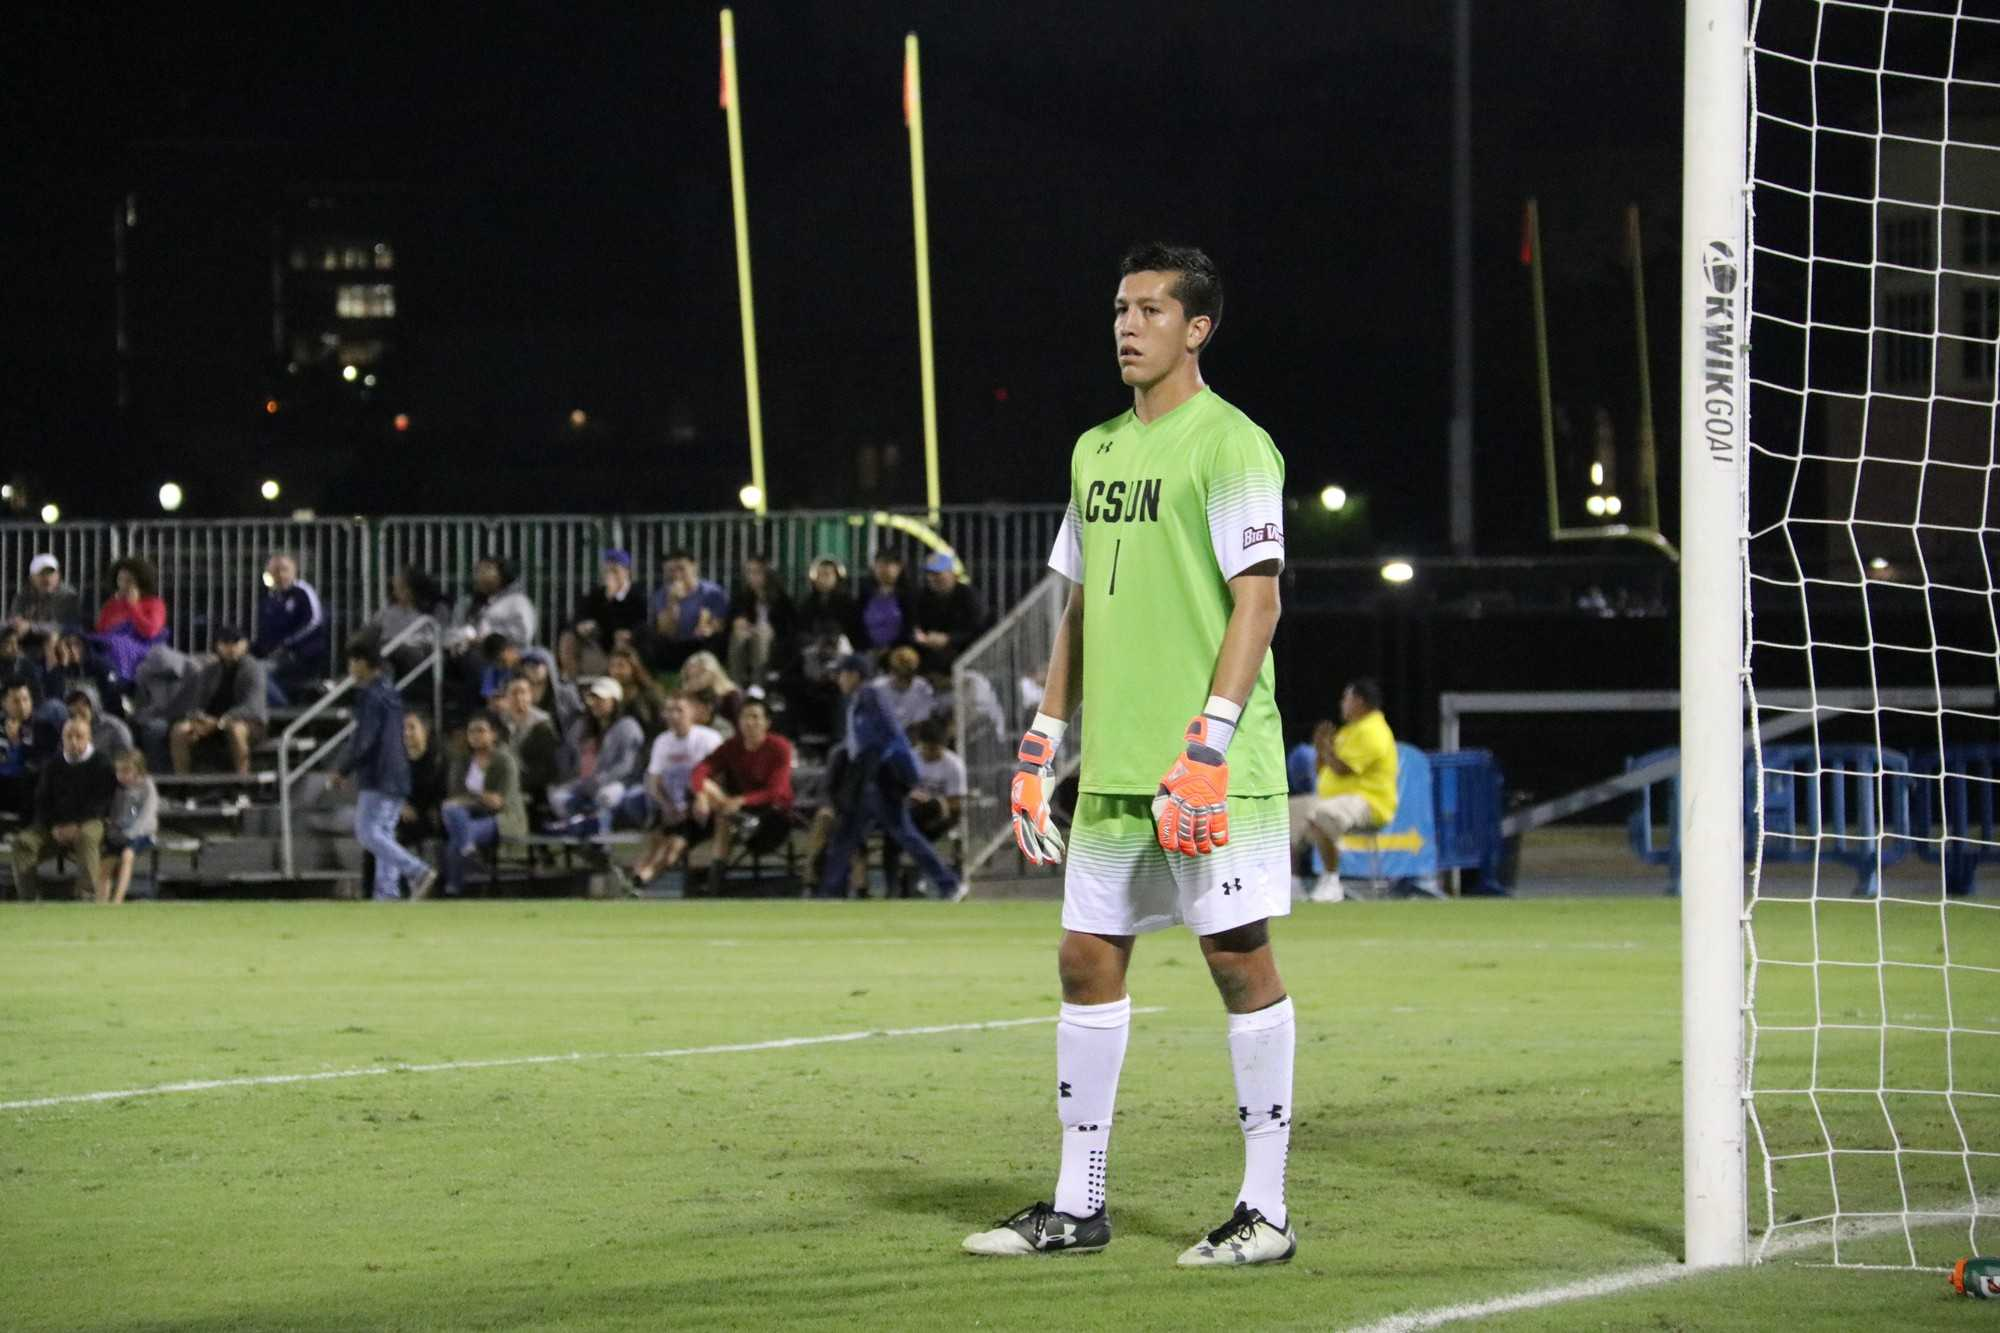 CSUN goalie watches ball